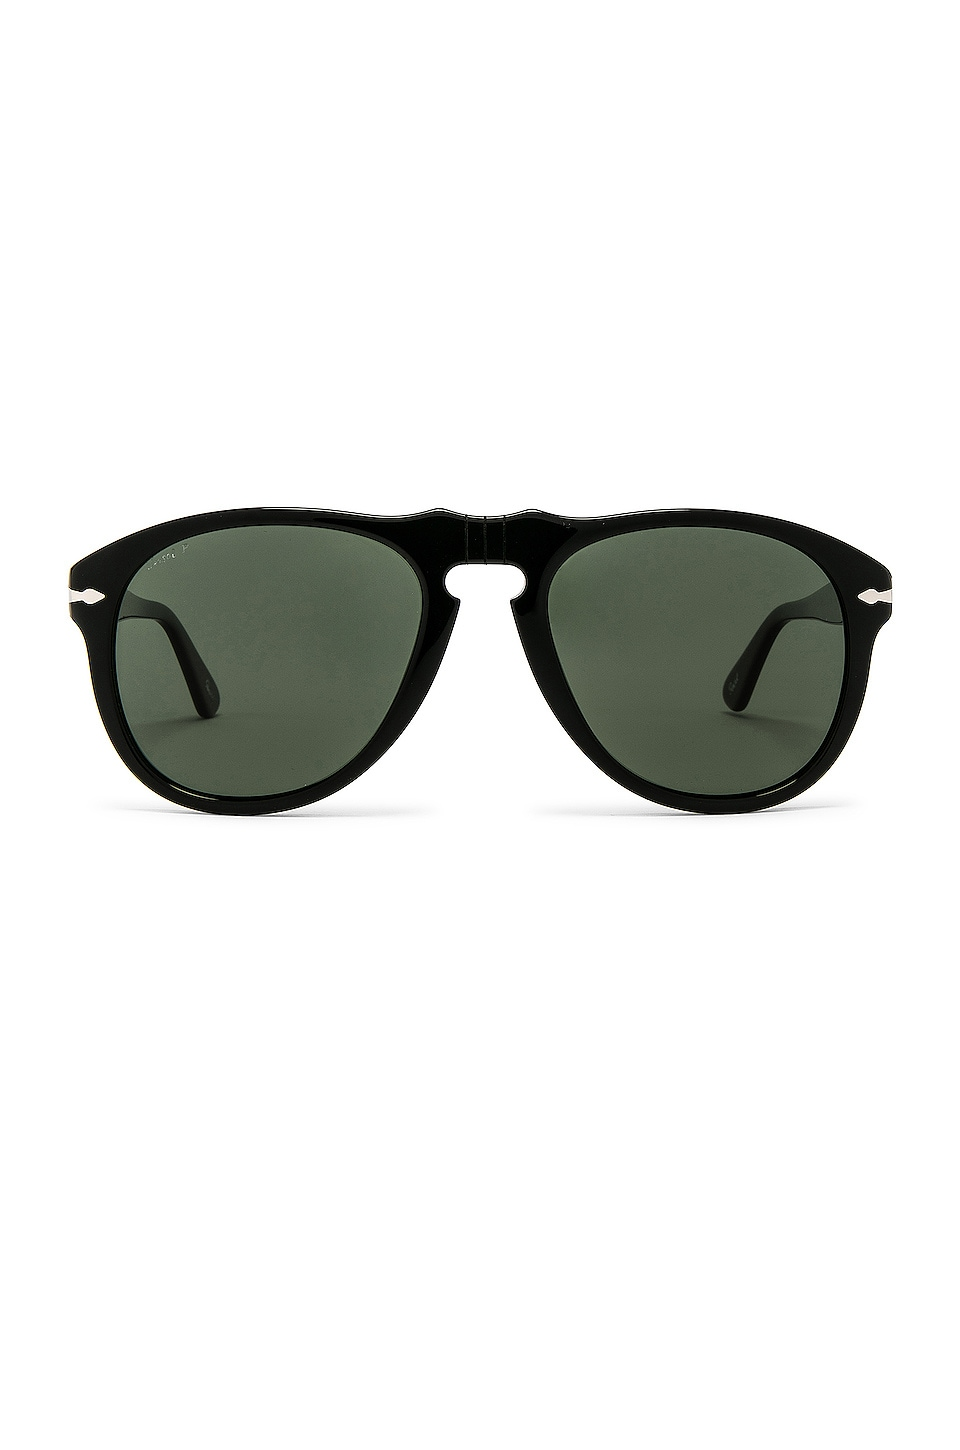 Persol PO0649 in Black & Green Polar